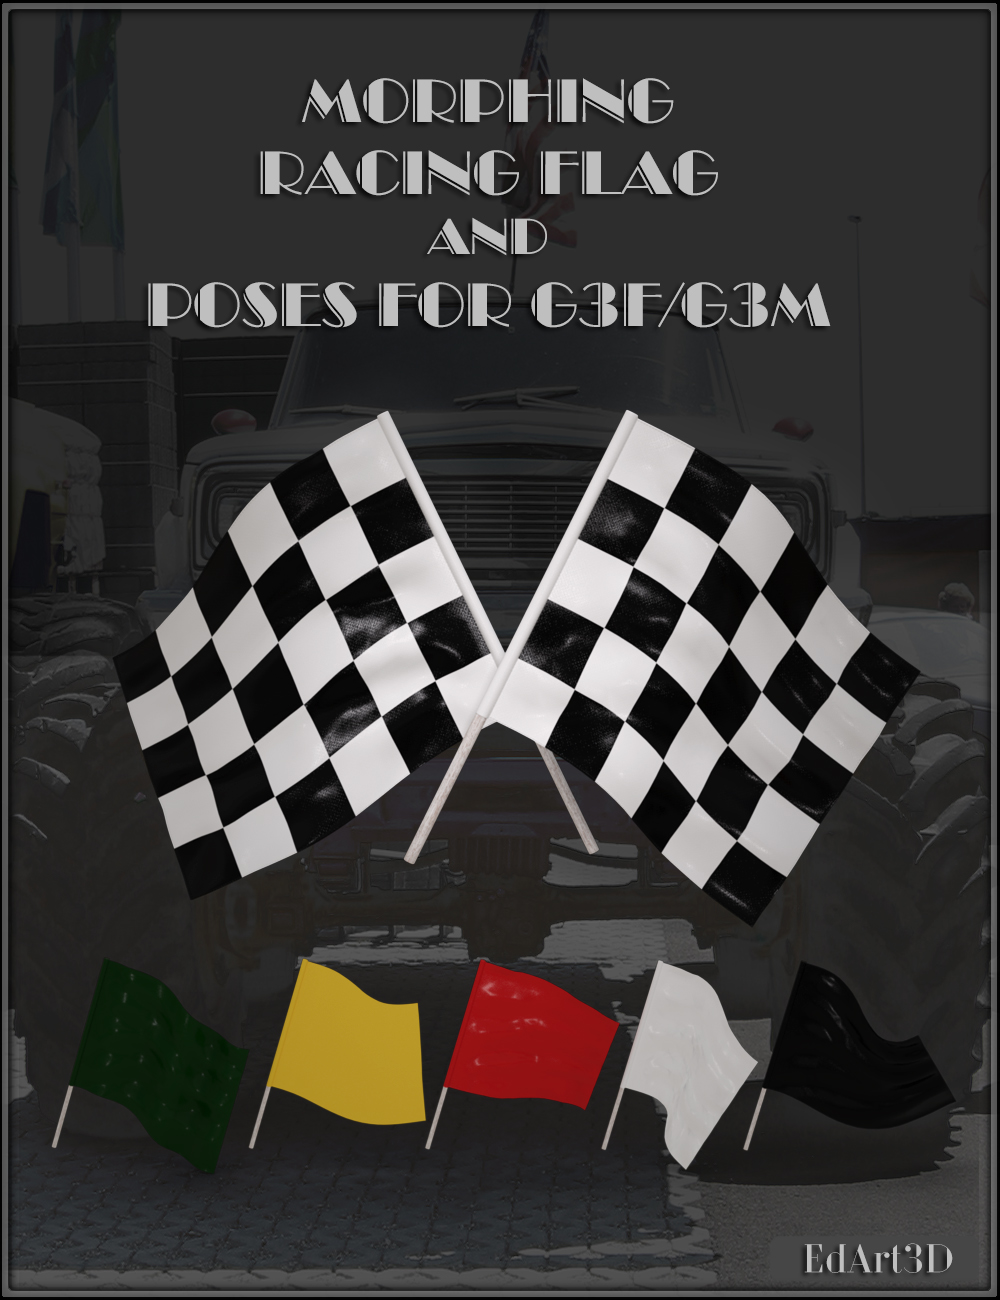 Morphing Racing Flag and Poses for G3F and G3M